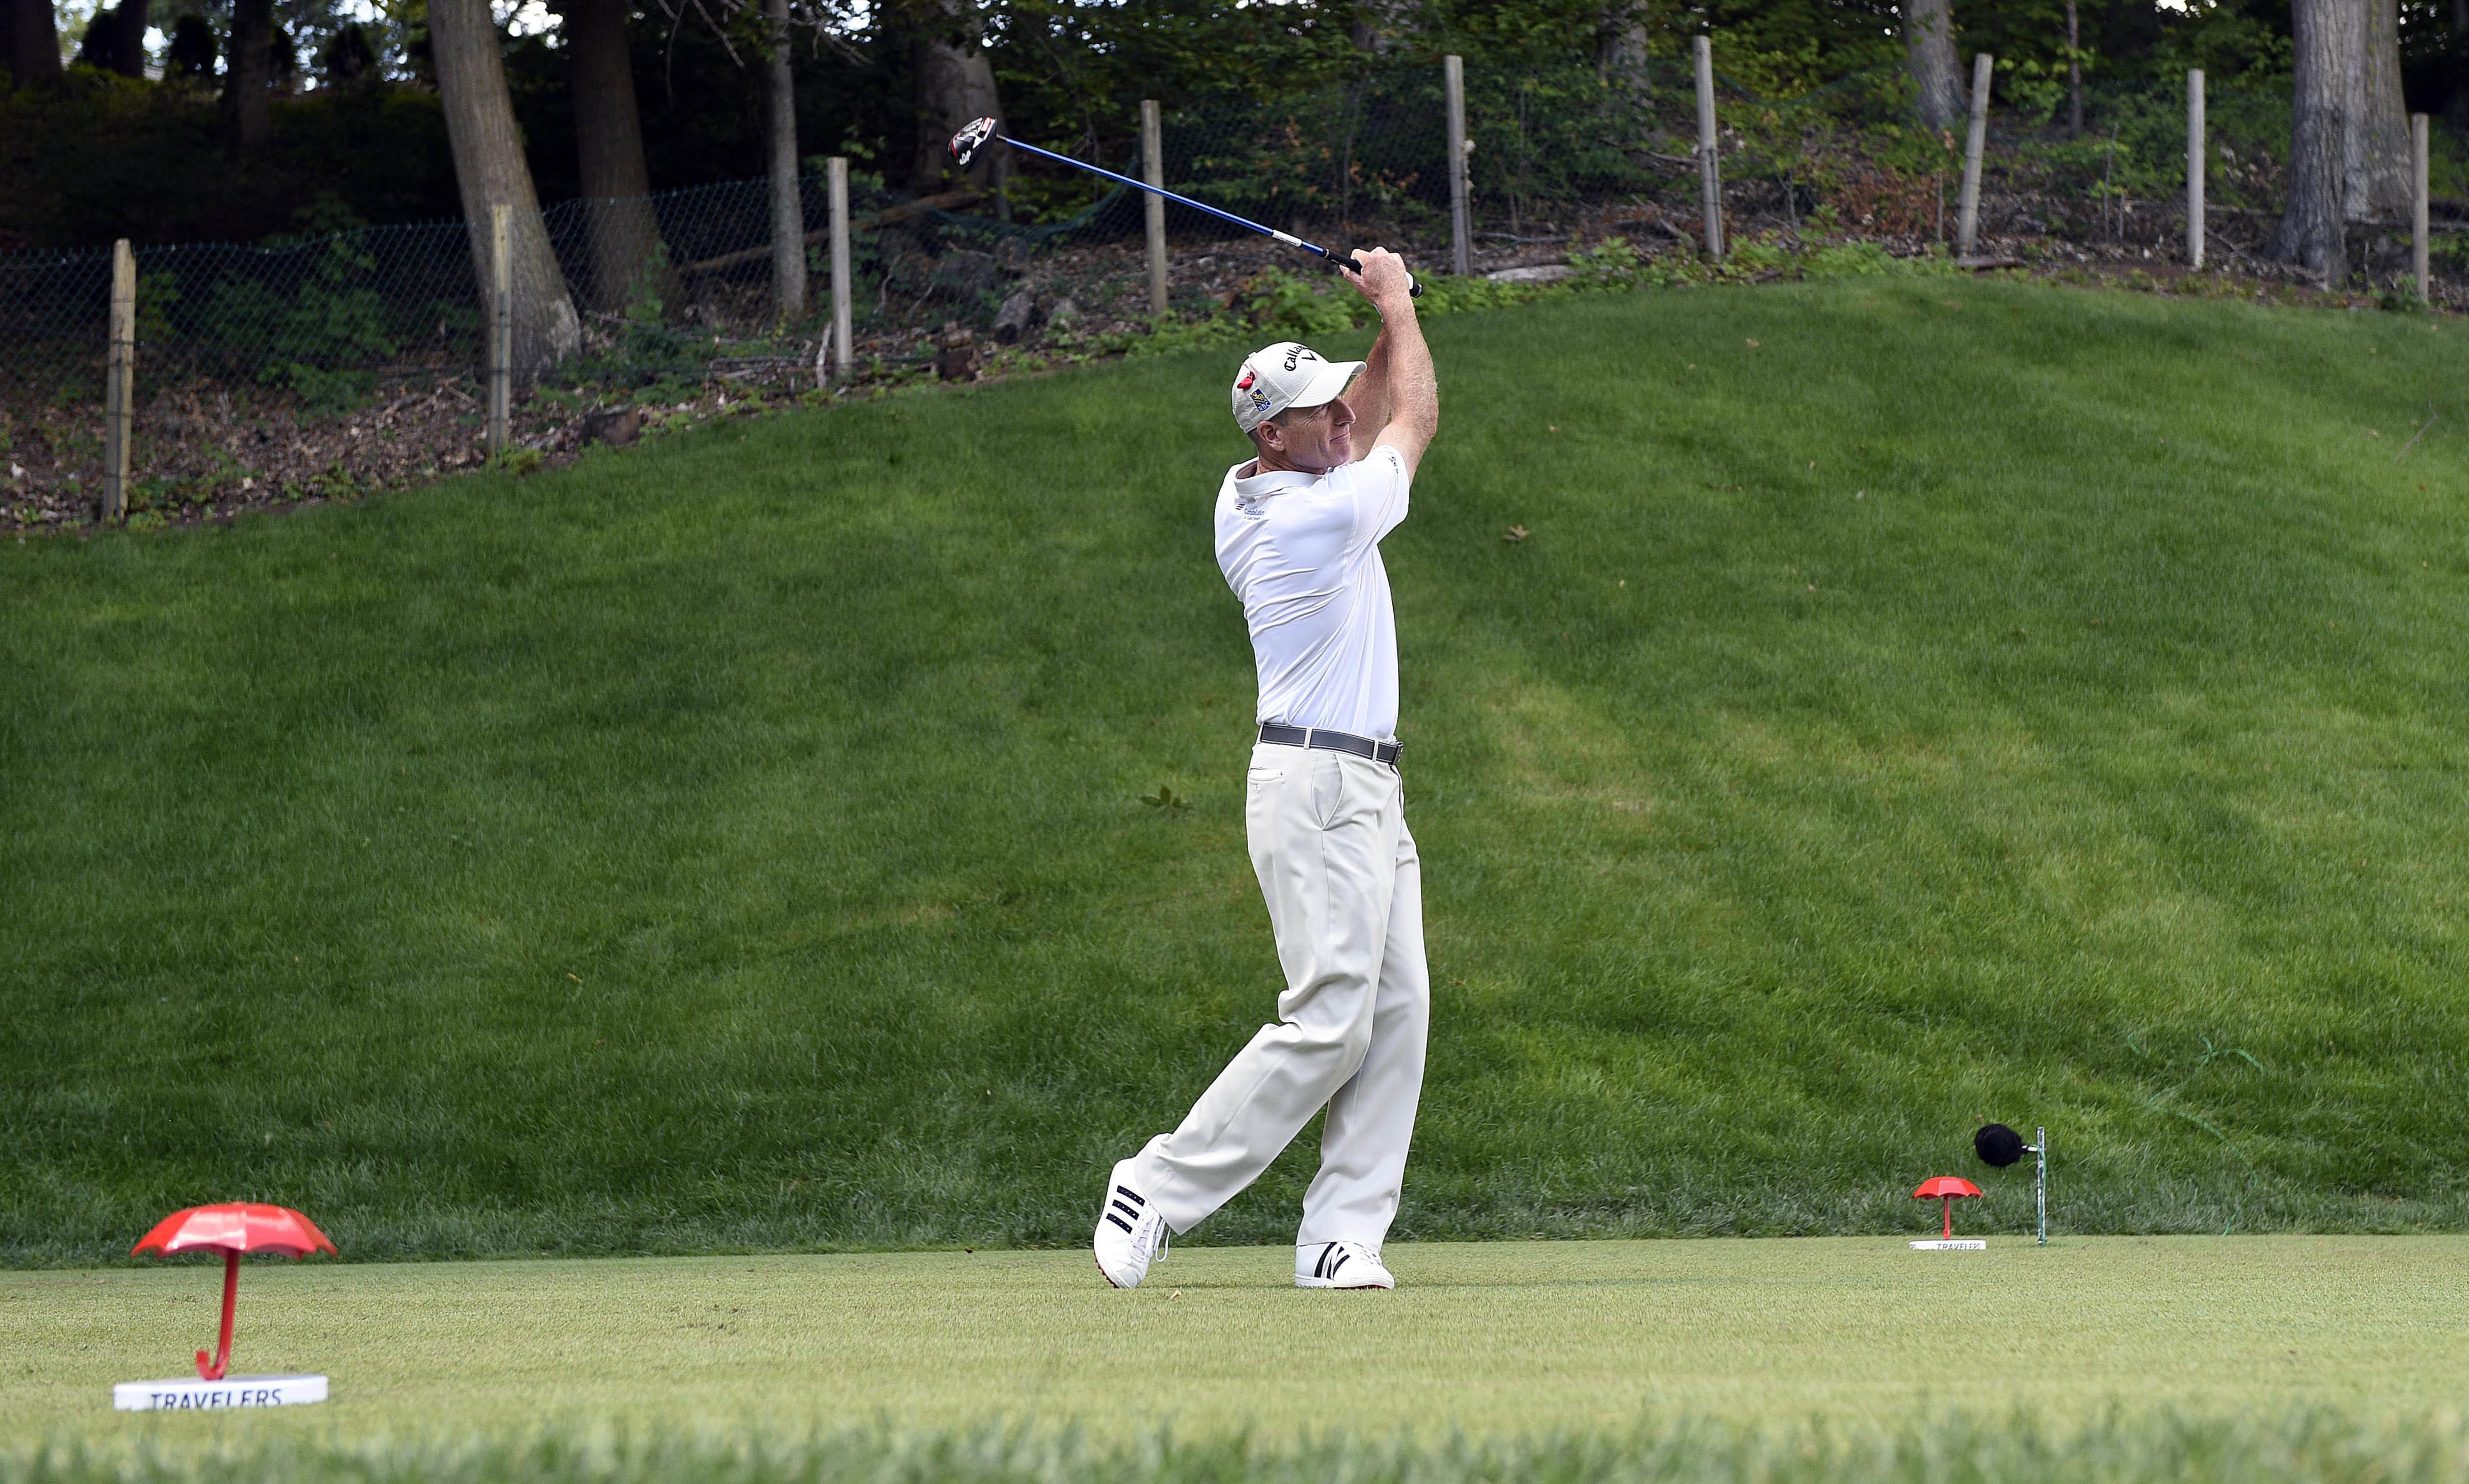 FILE - In this Aug. 7, 2016 photo, Jim Furyk tees off on the 15th hole during the final round of the Travelers Championship golf tournament in Cromwell, Conn. PGA Tour commissioner Tim Finchem said the PGA would build a 32,000-square foot clubhouse at the